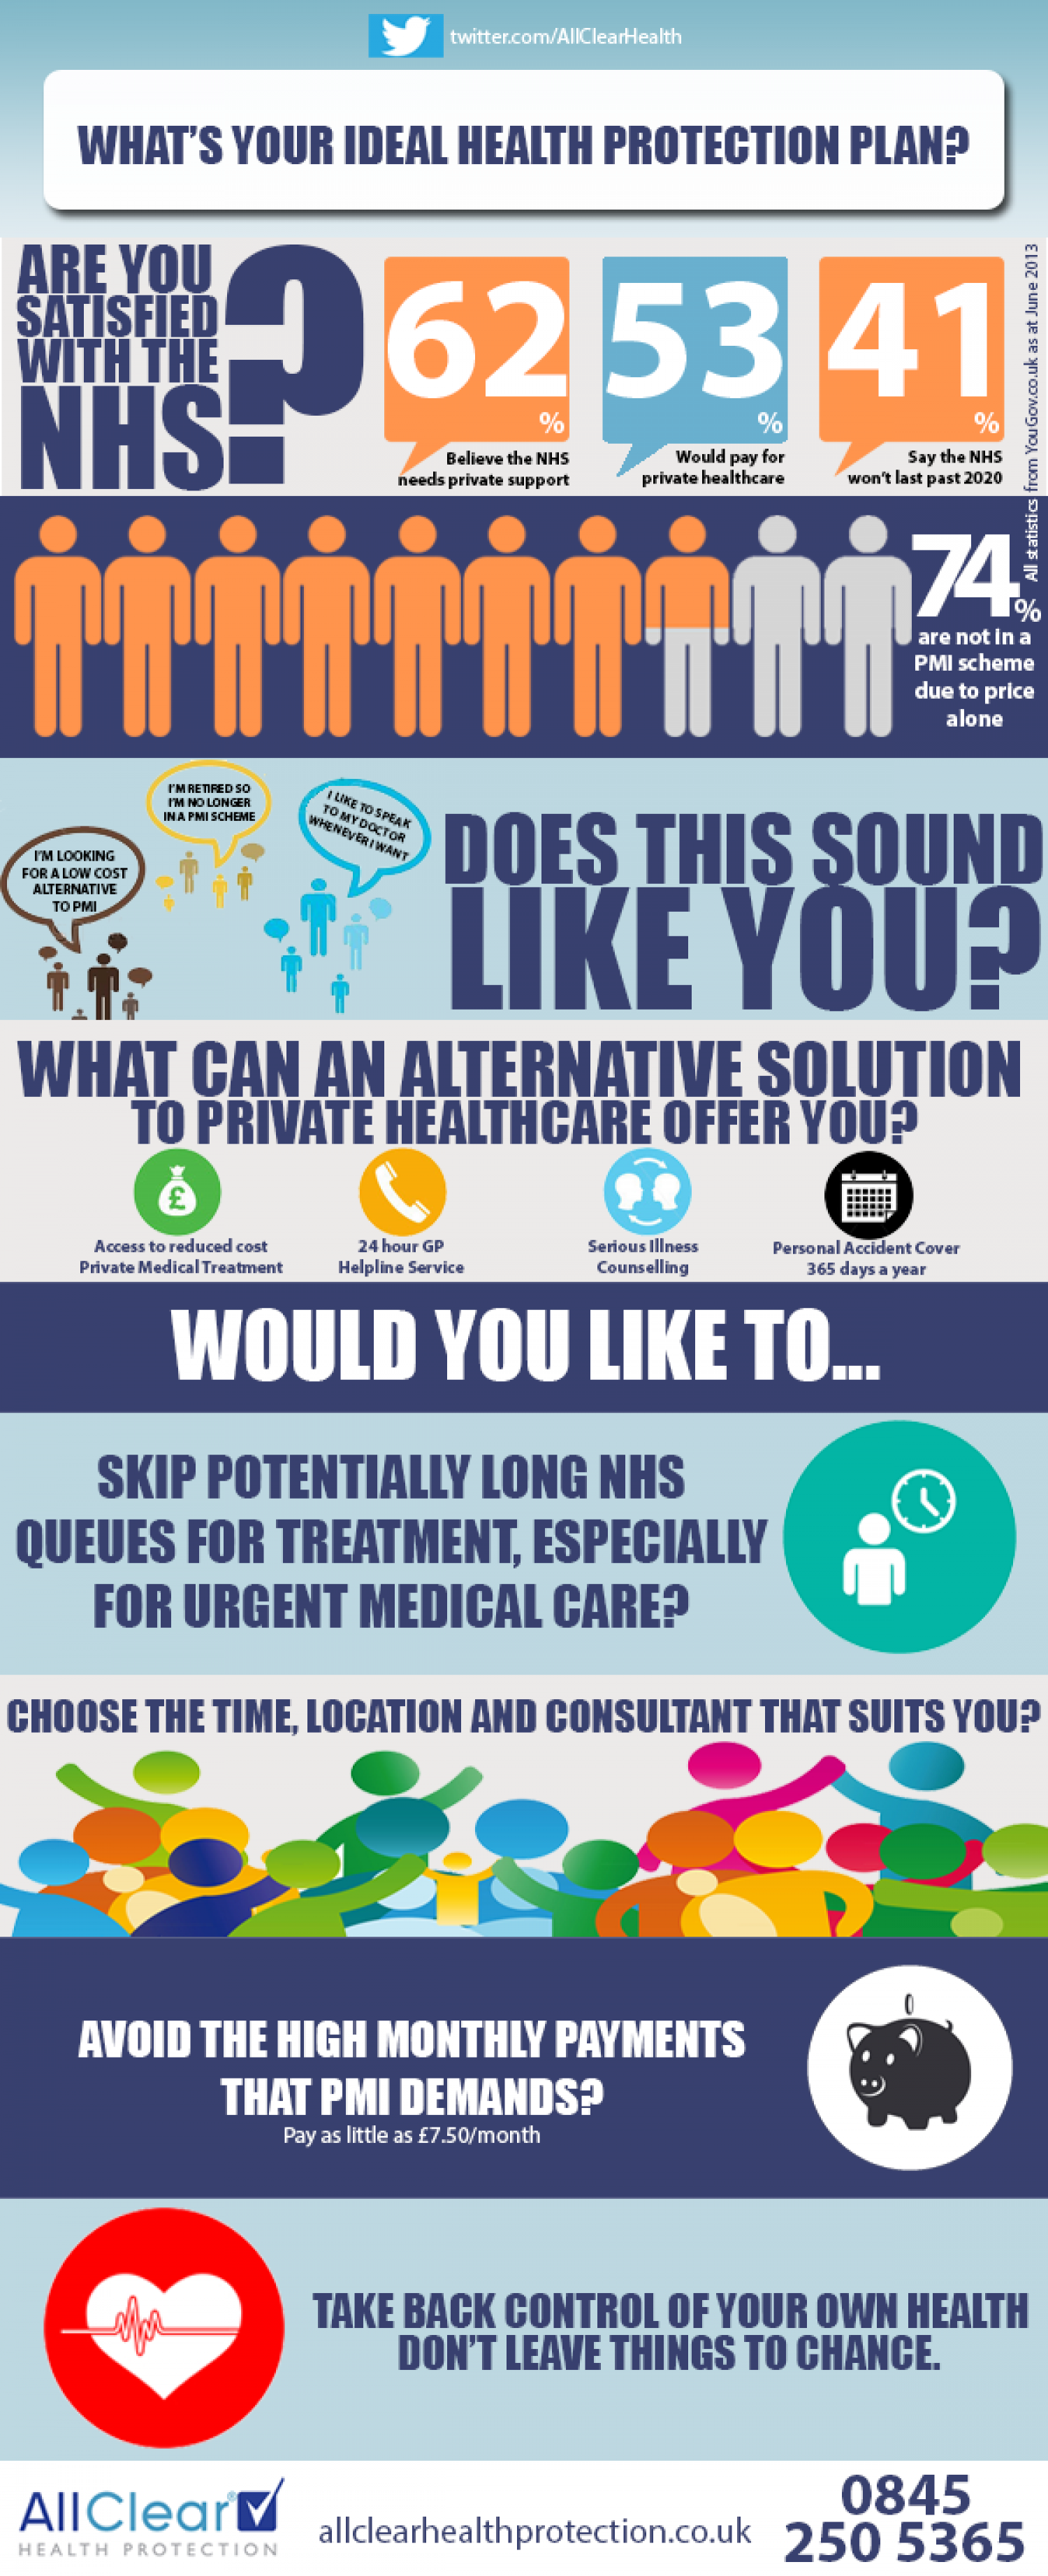 What's Your Ideal Health Protection Plan? Infographic